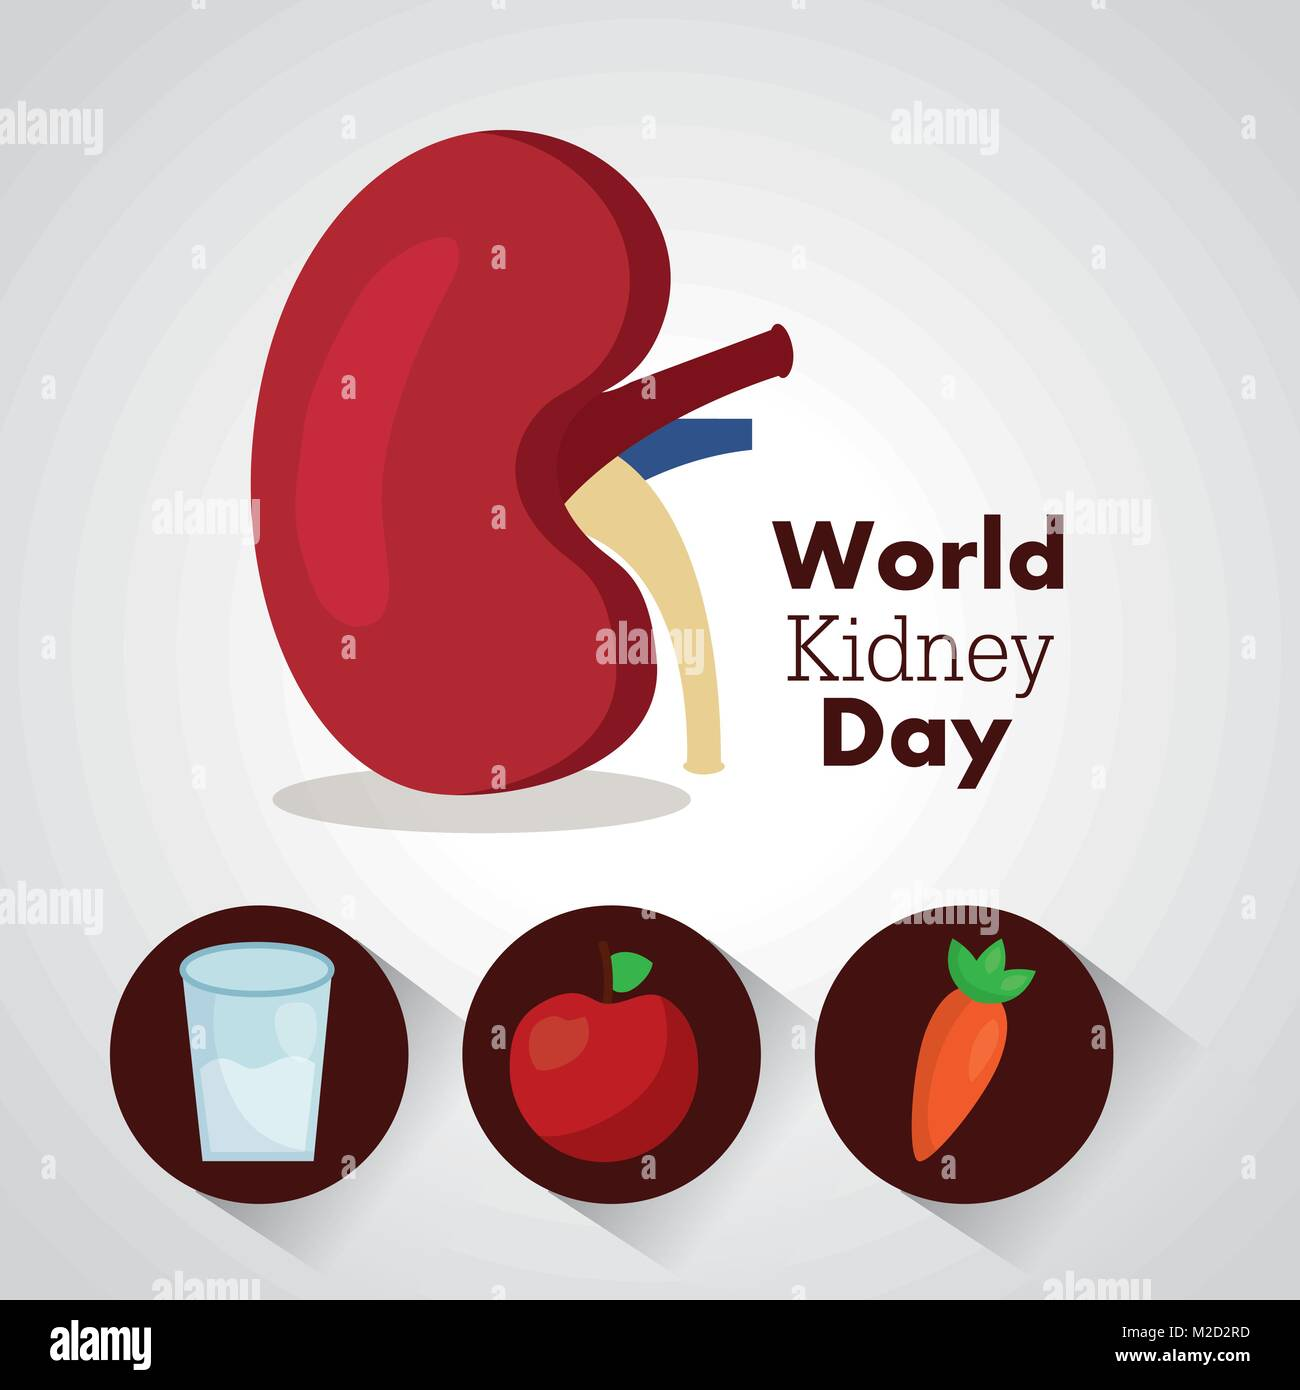 world kidney day card health food water care - Stock Image